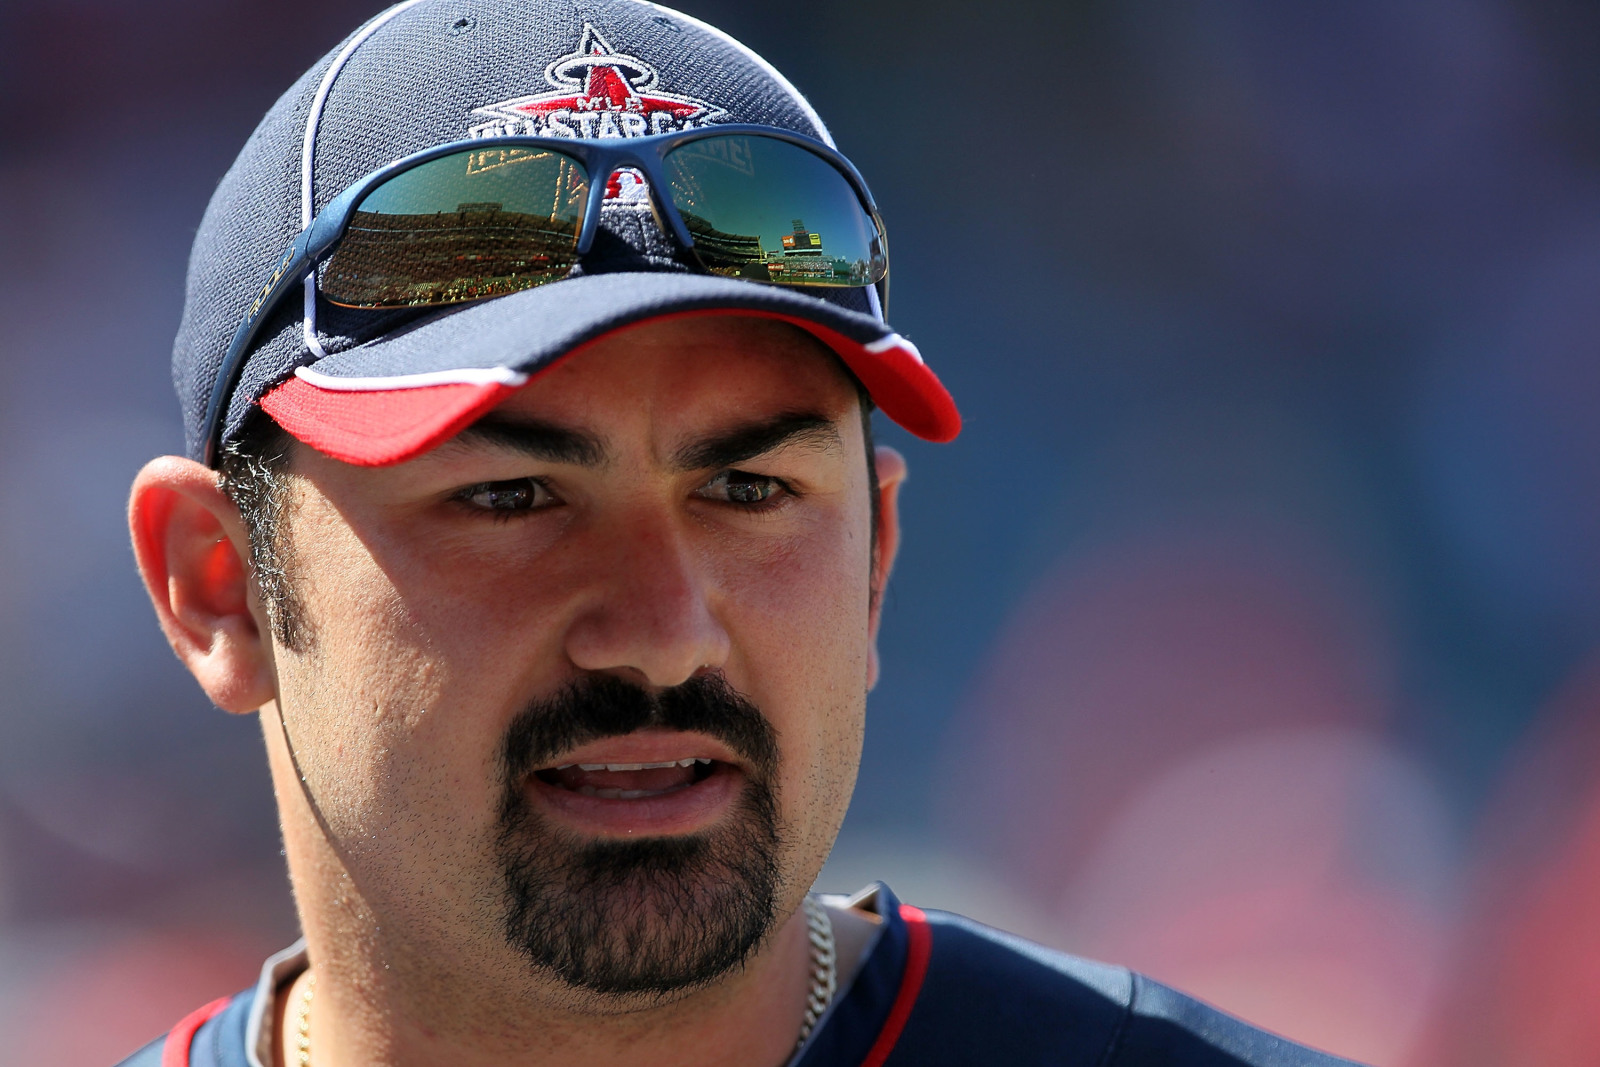 Adrian Gonzalez dismisses idea of starting season with All-Star game